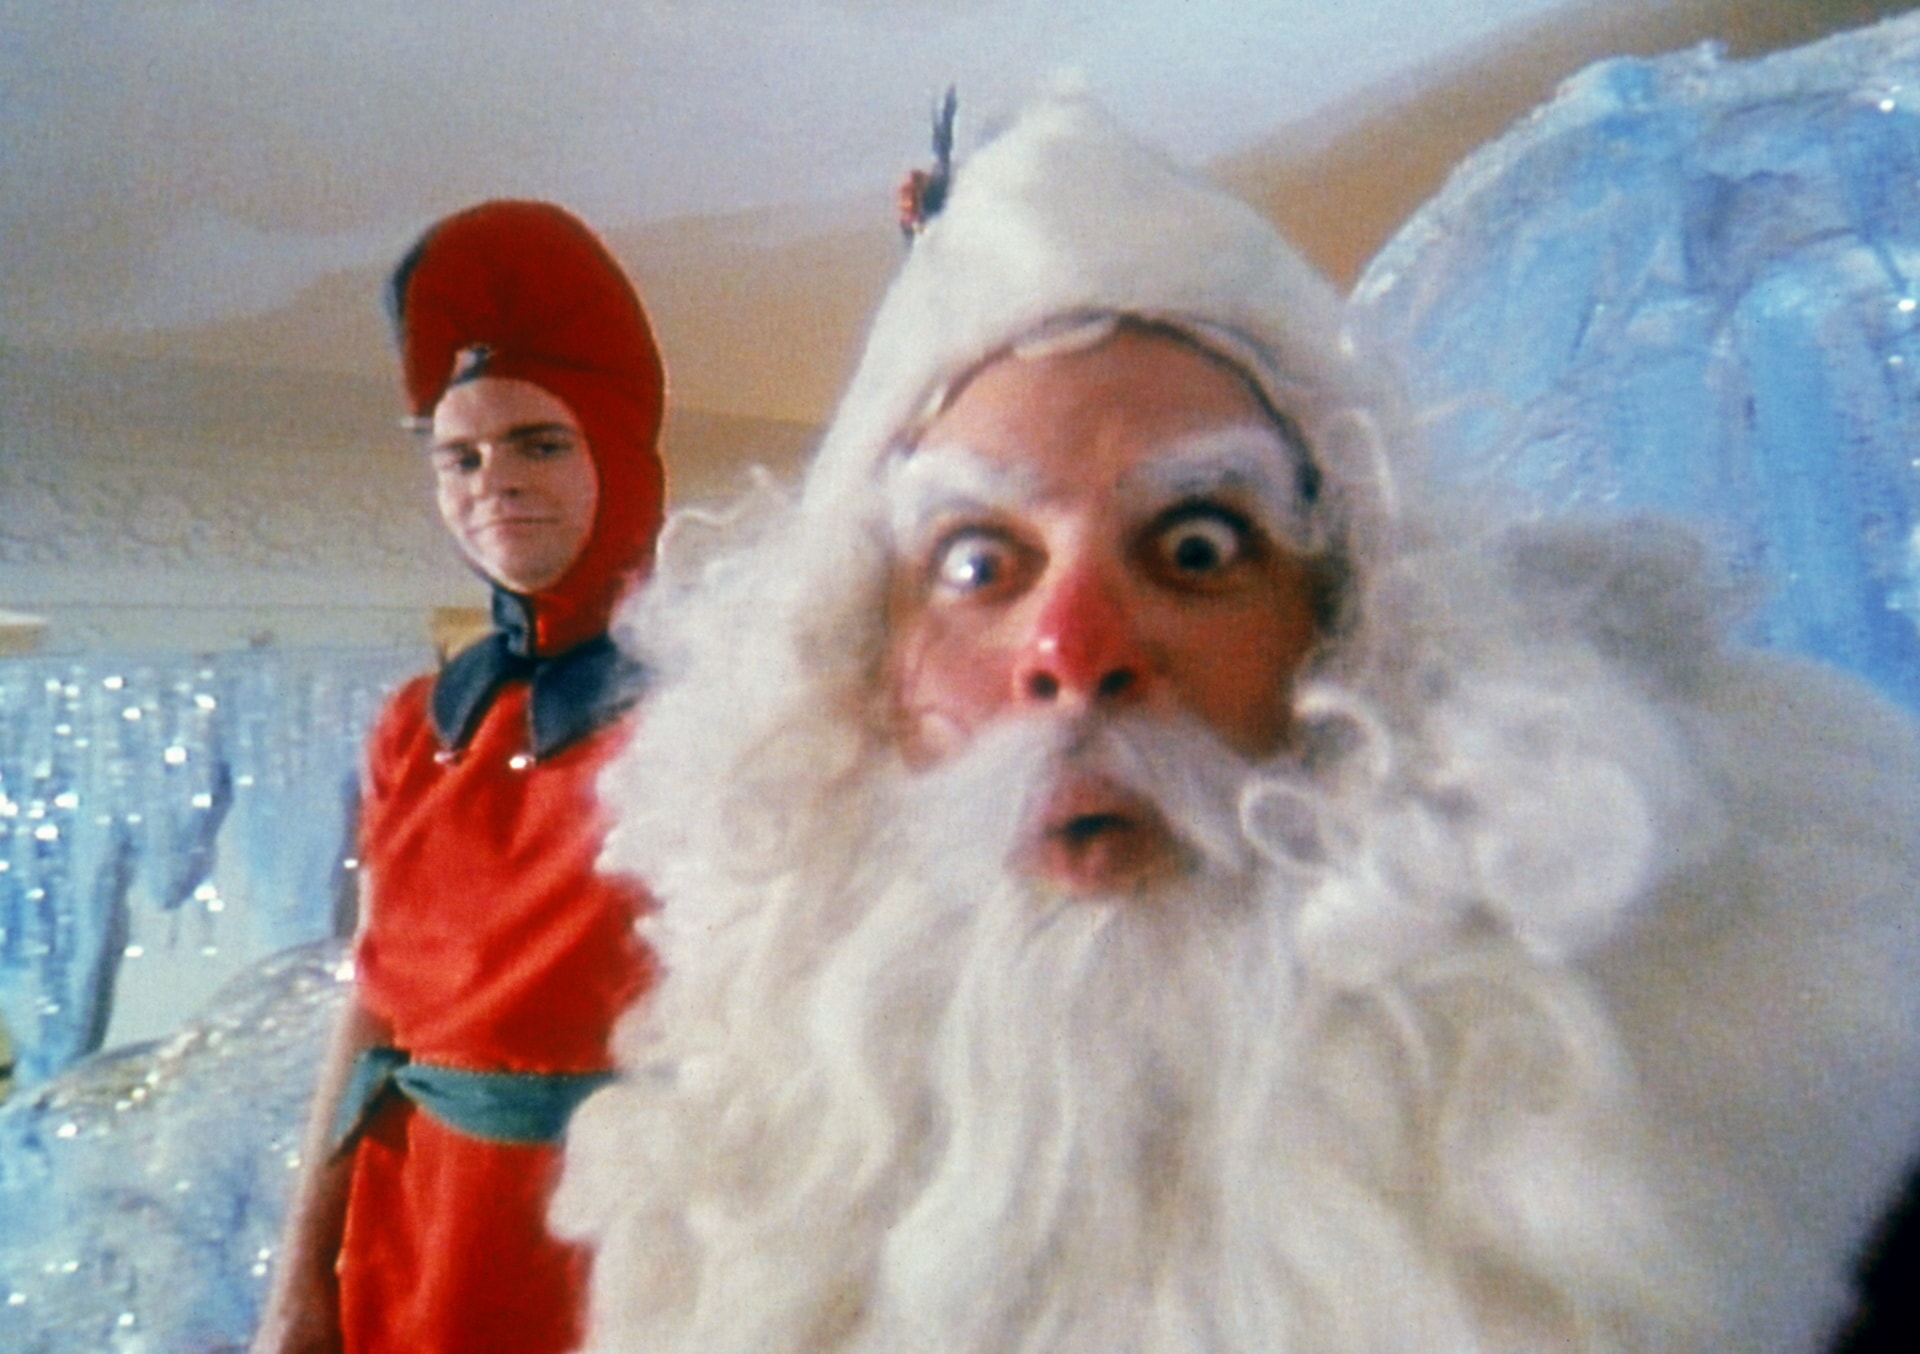 Closeup shot of Santa's face with elf in background